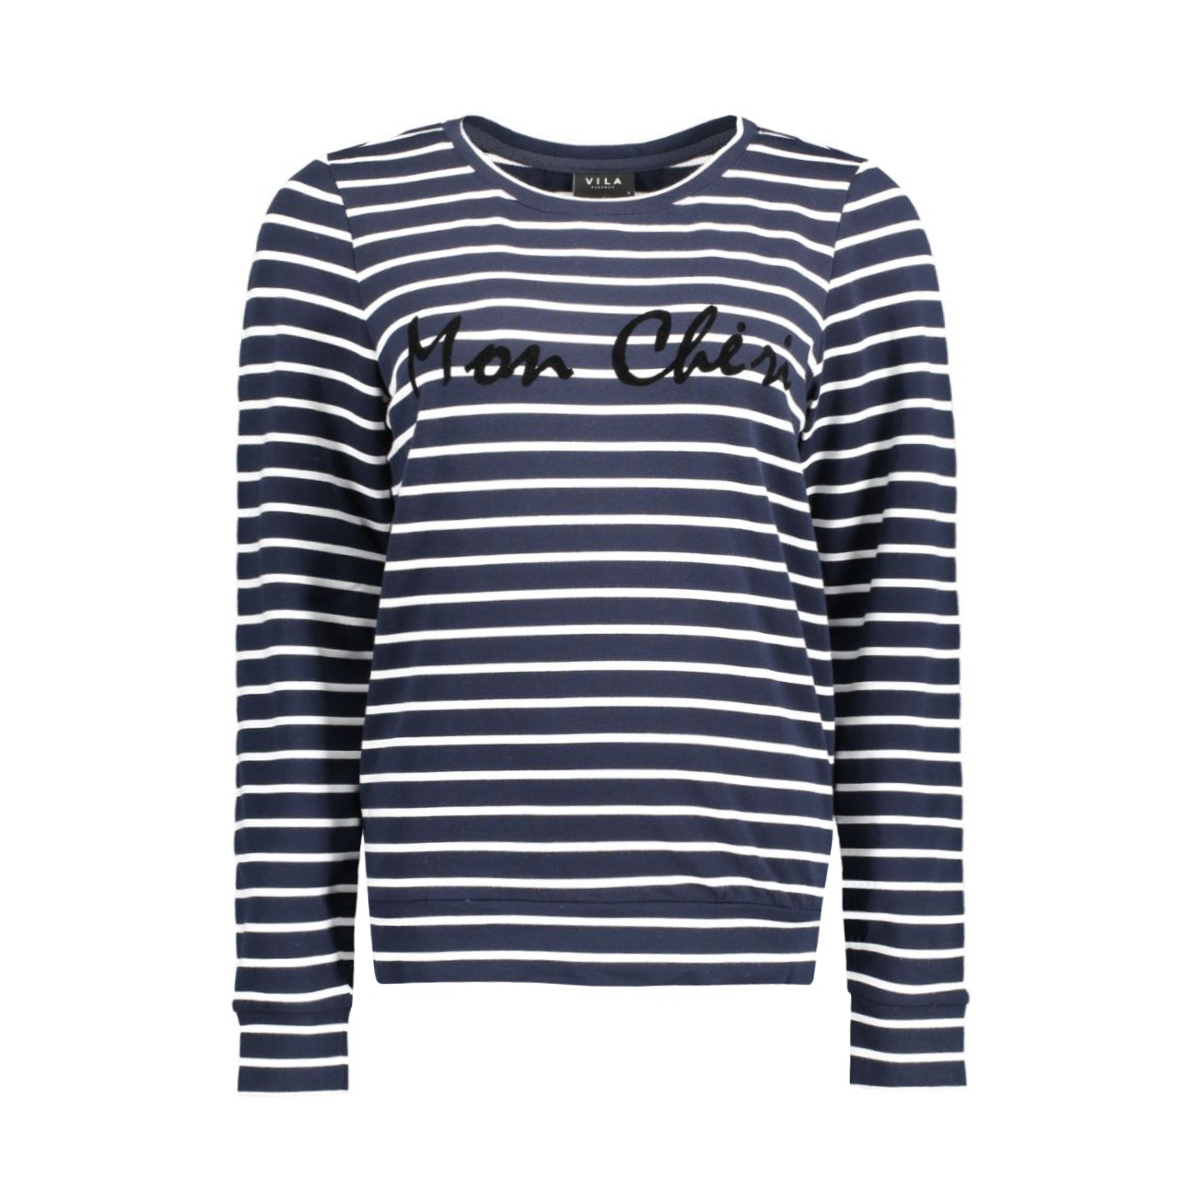 vitopi stripe sweat top 14039528 vila t-shirt total eclipse